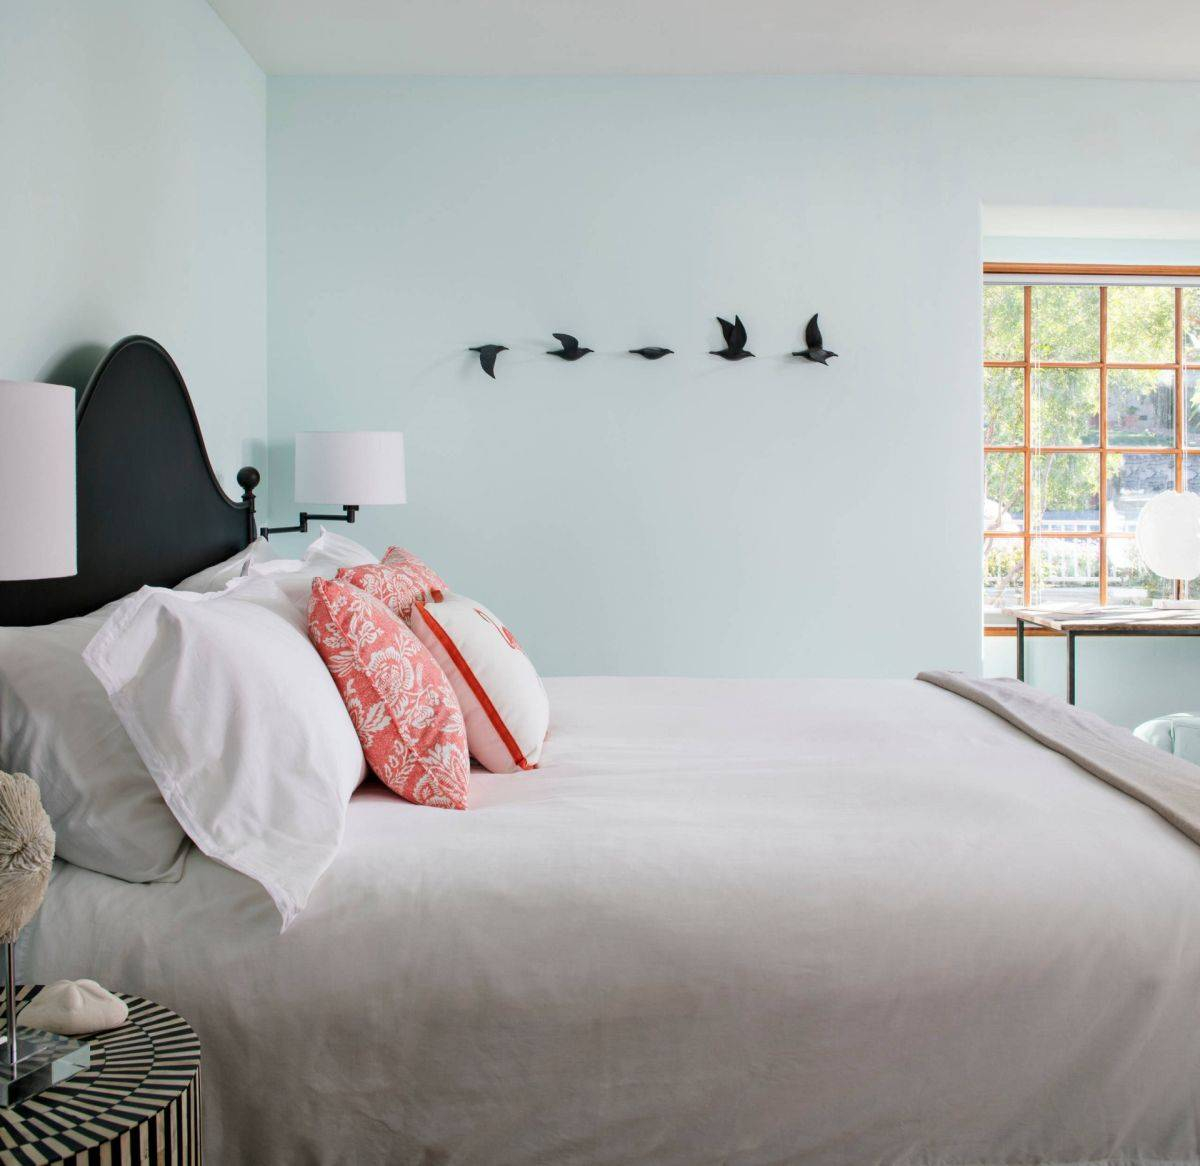 Likable Best Paint Color For Bedroom Walls Contemporary throughout proportions 1200 X 1166